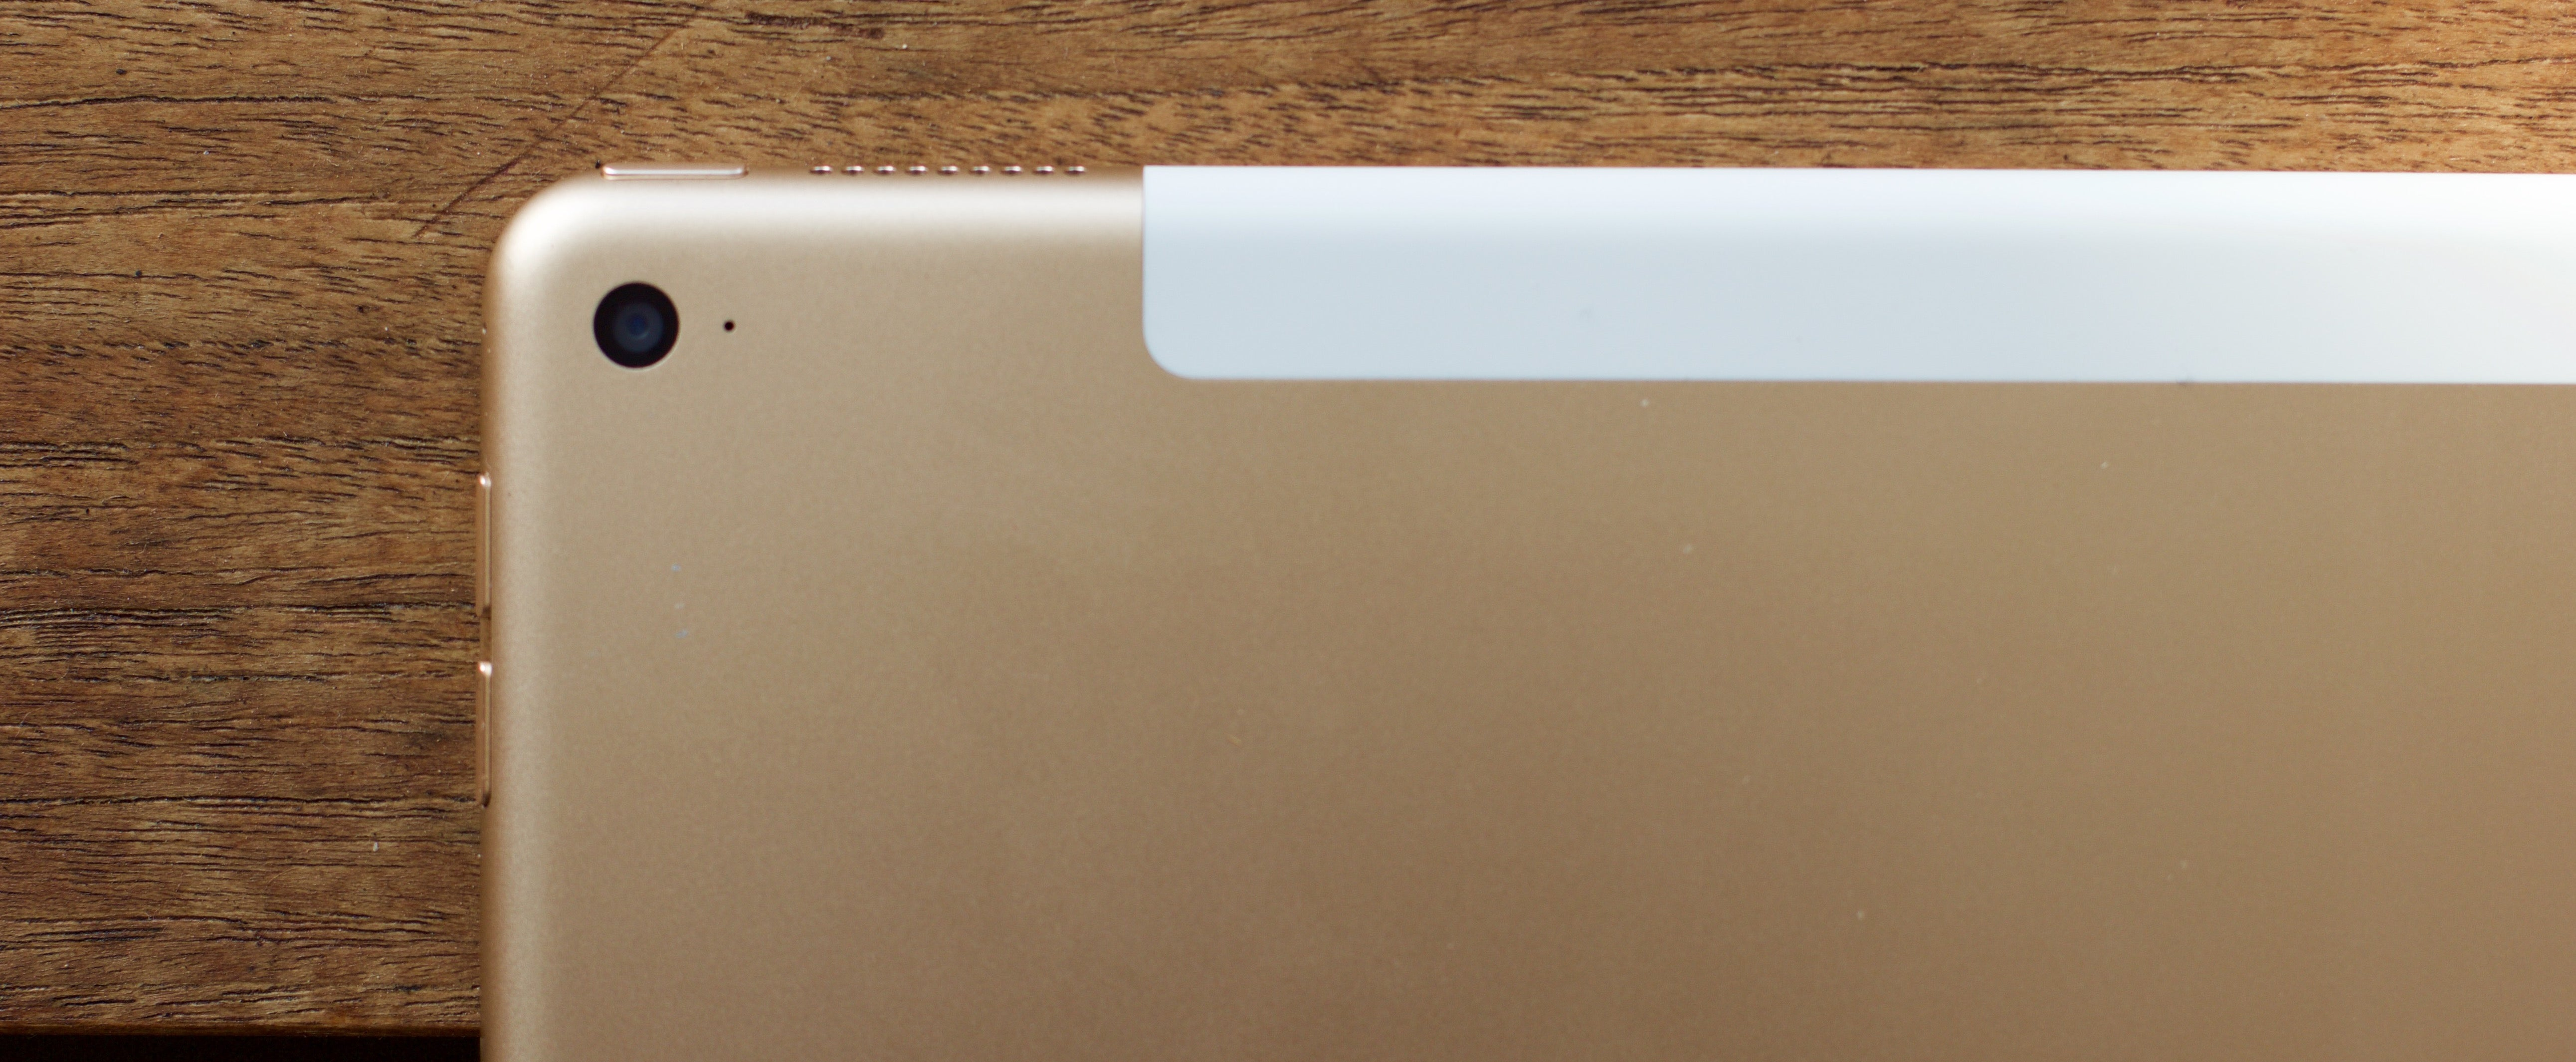 What It's Like To Use the iPad Pro As a Laptop